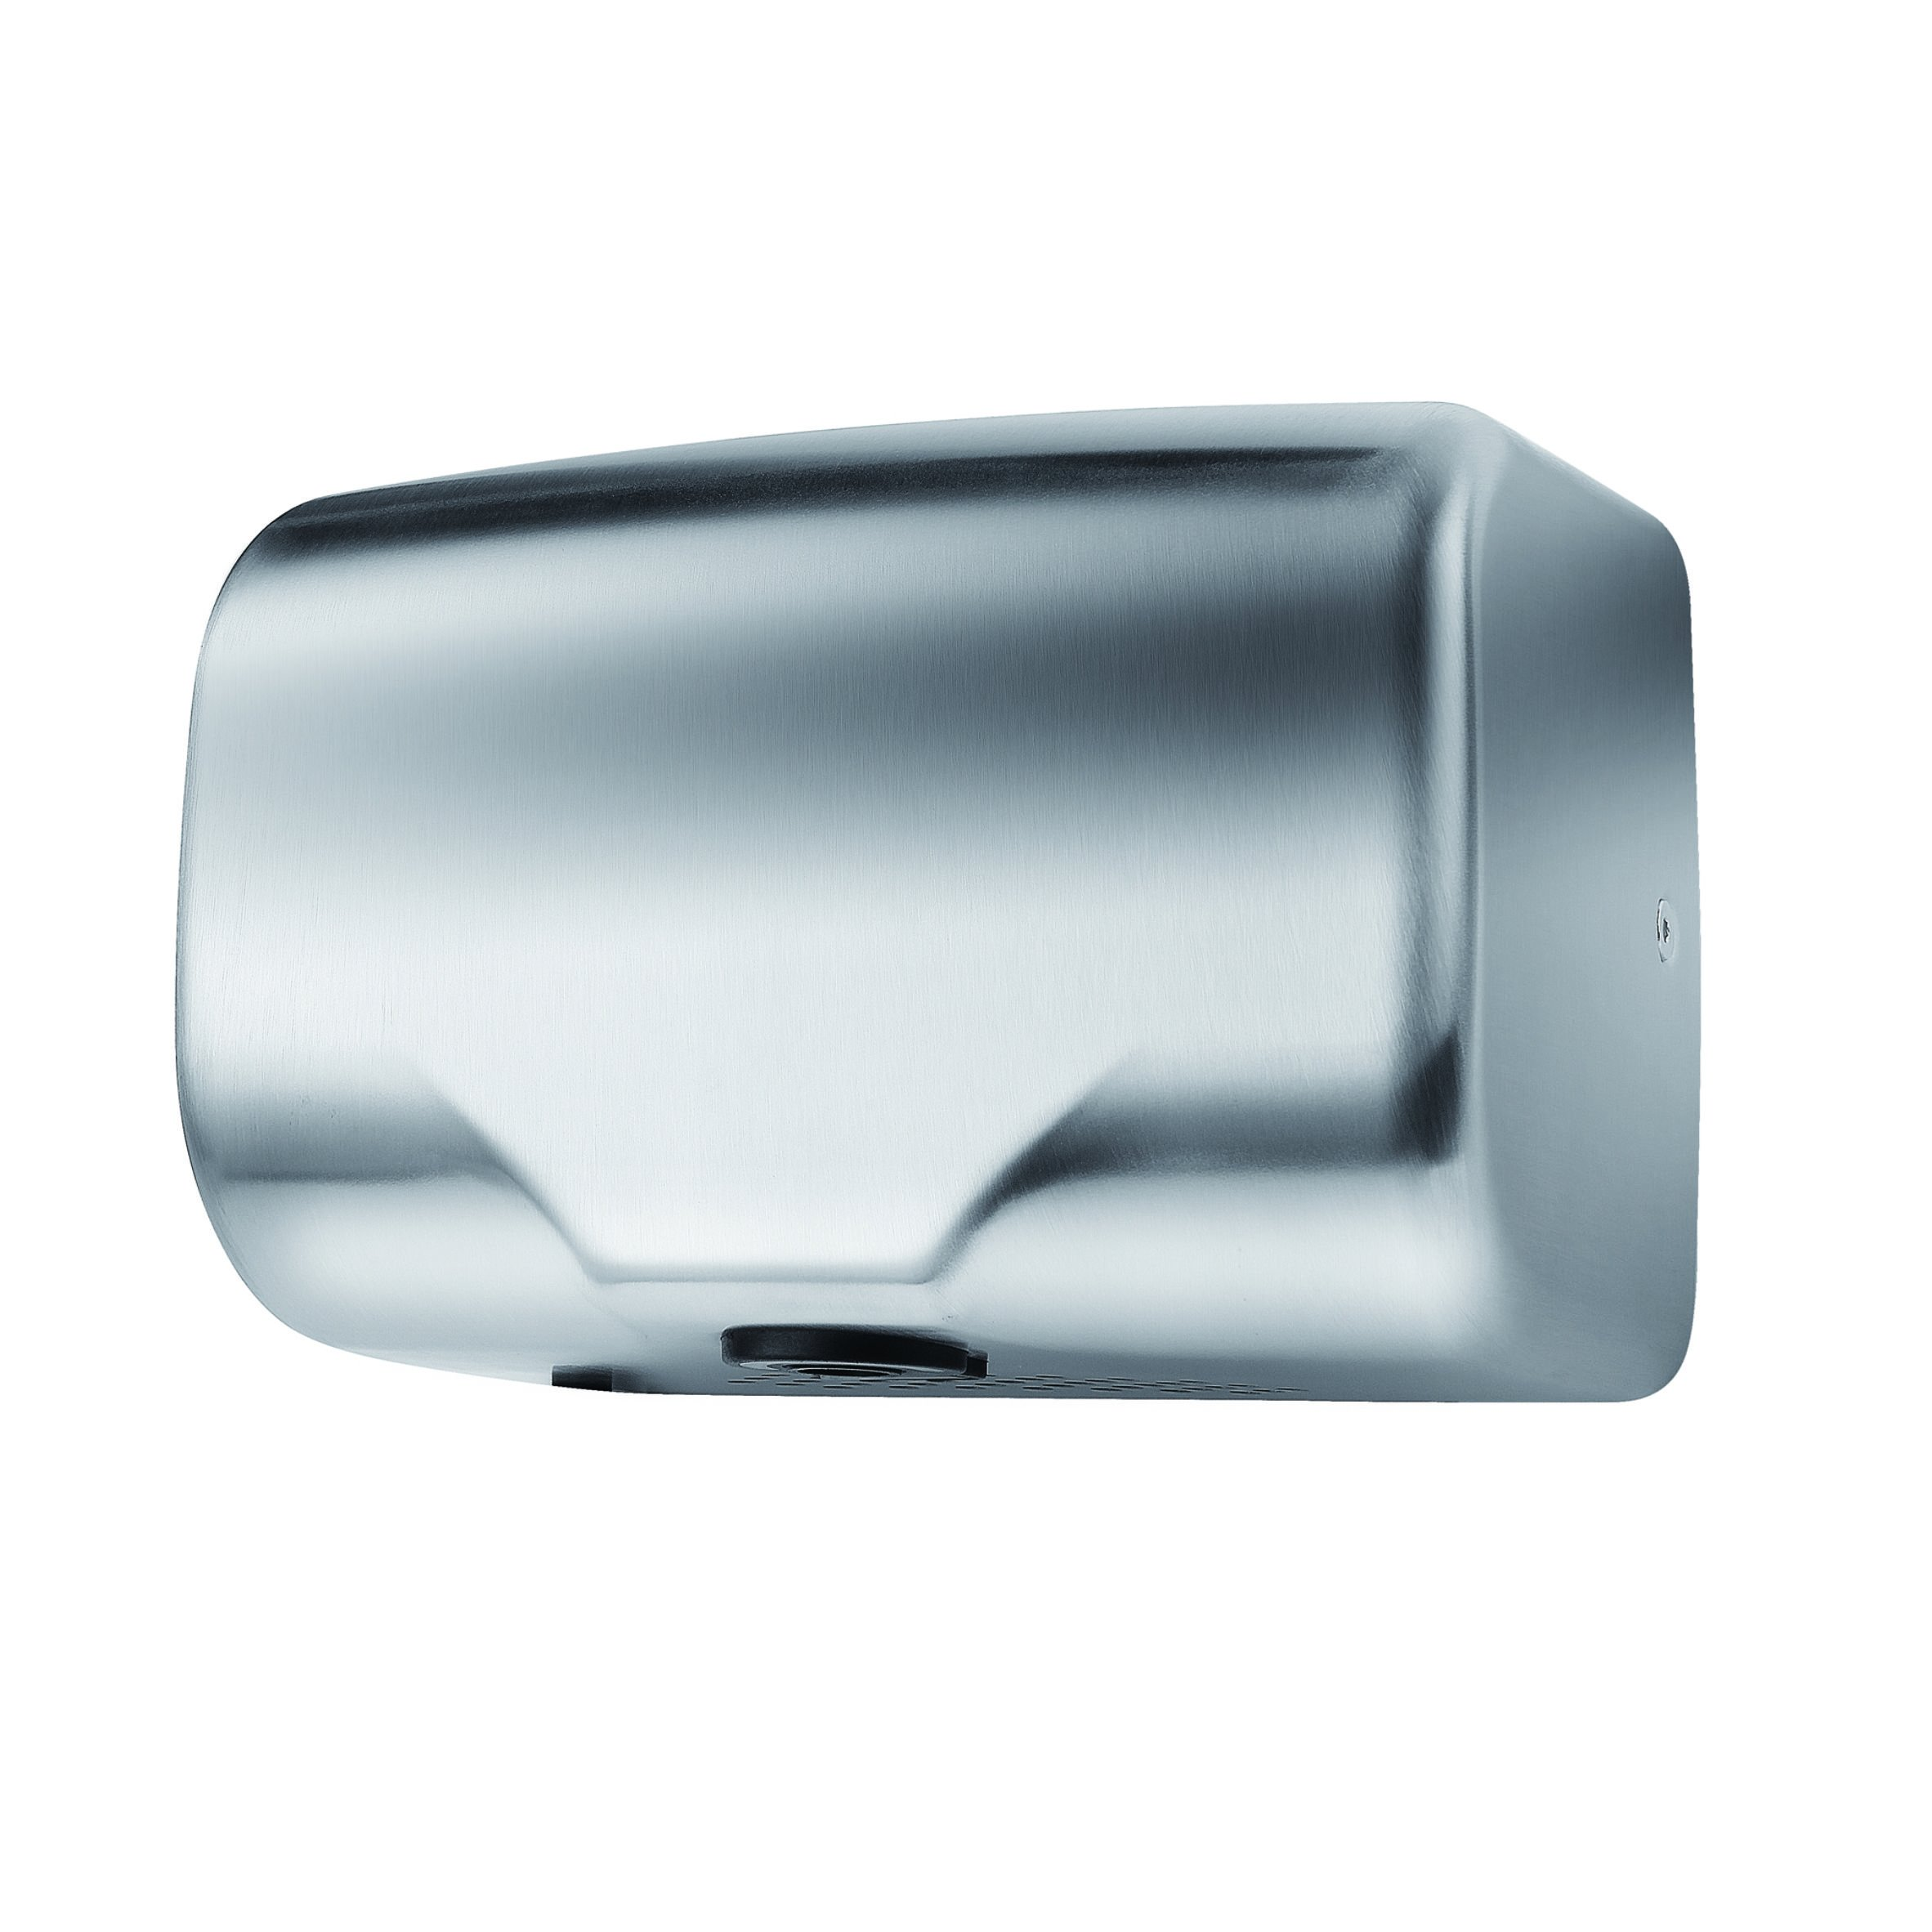 ASIALEO 1350W High Speed Hand Dryer,Stainless Steel Automatic Hand Dryer for Bathroom Commercial